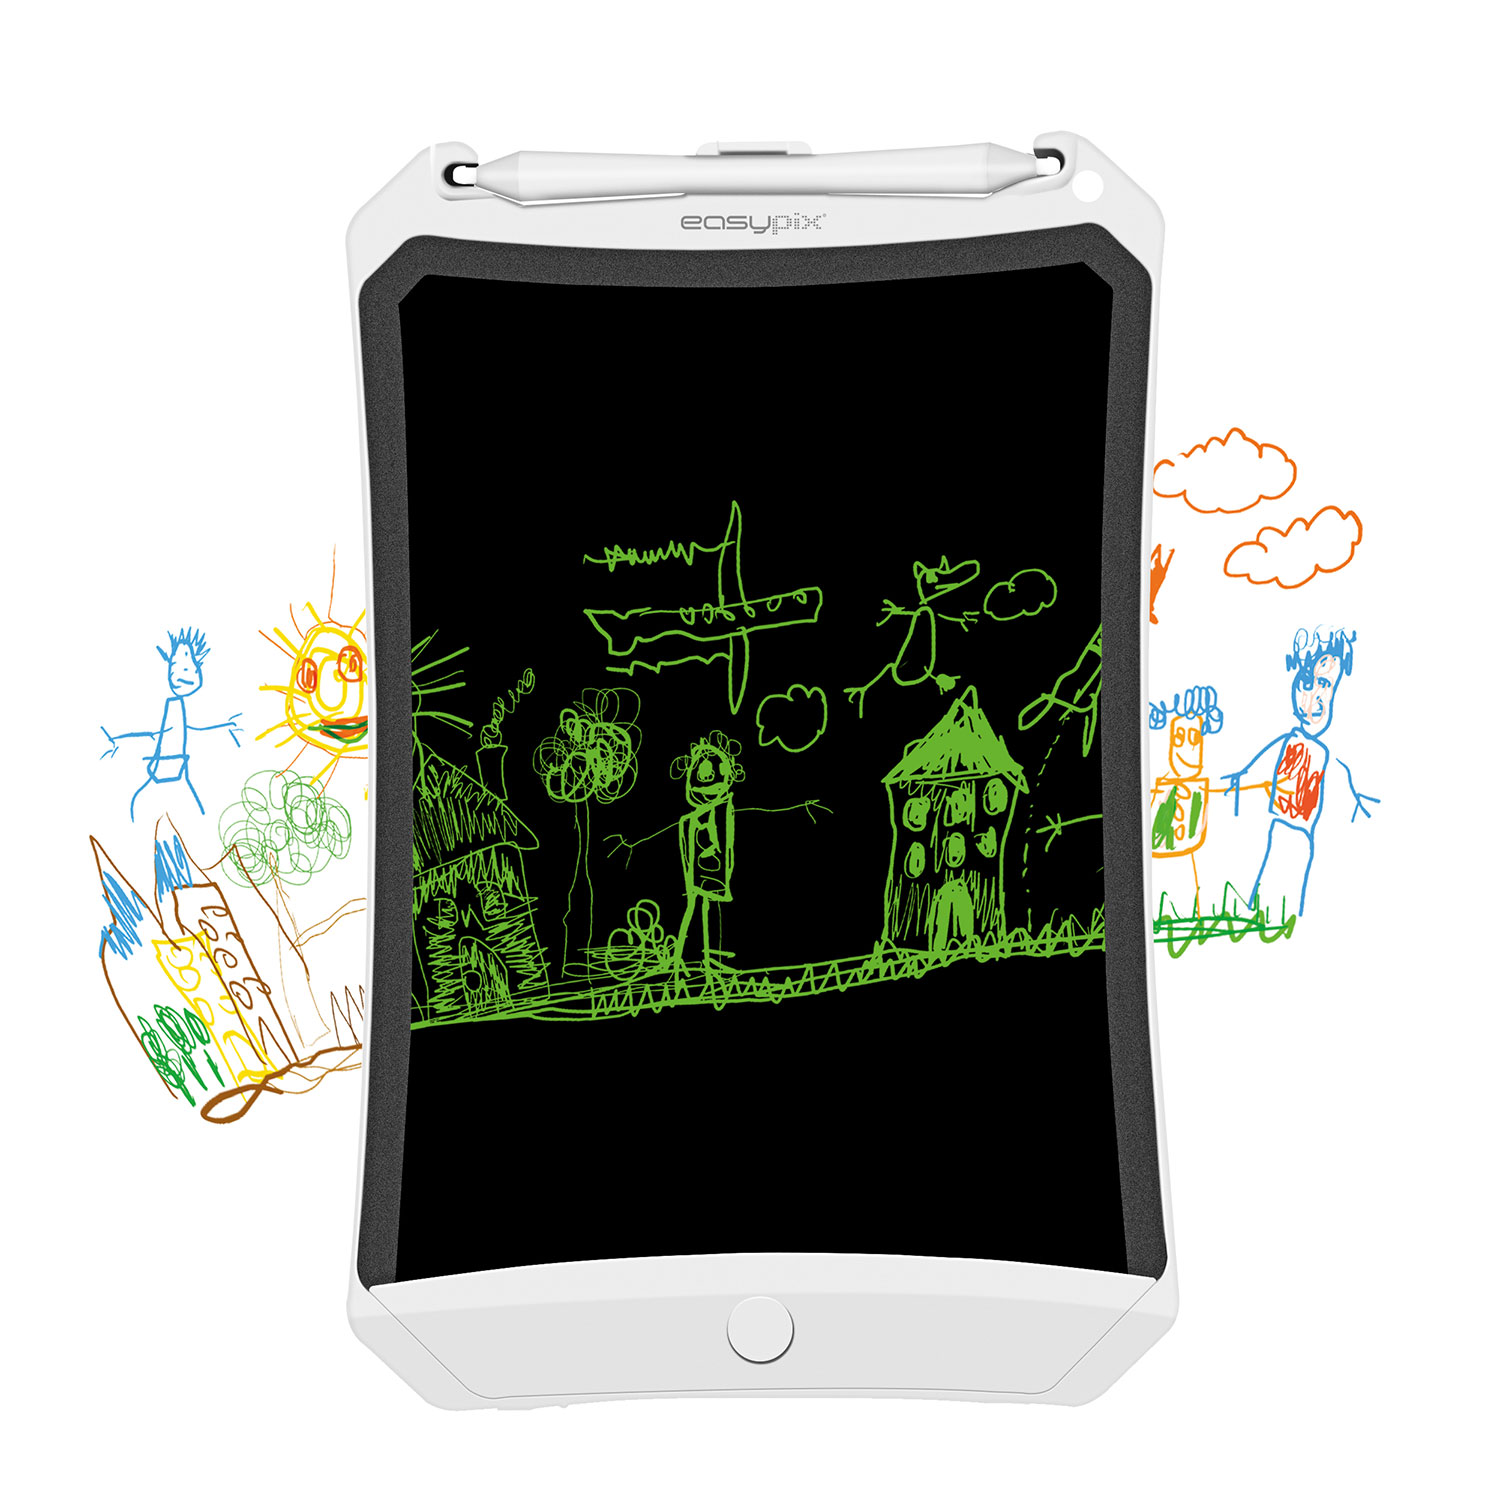 Easypix Kiddypix Magic LCD Board